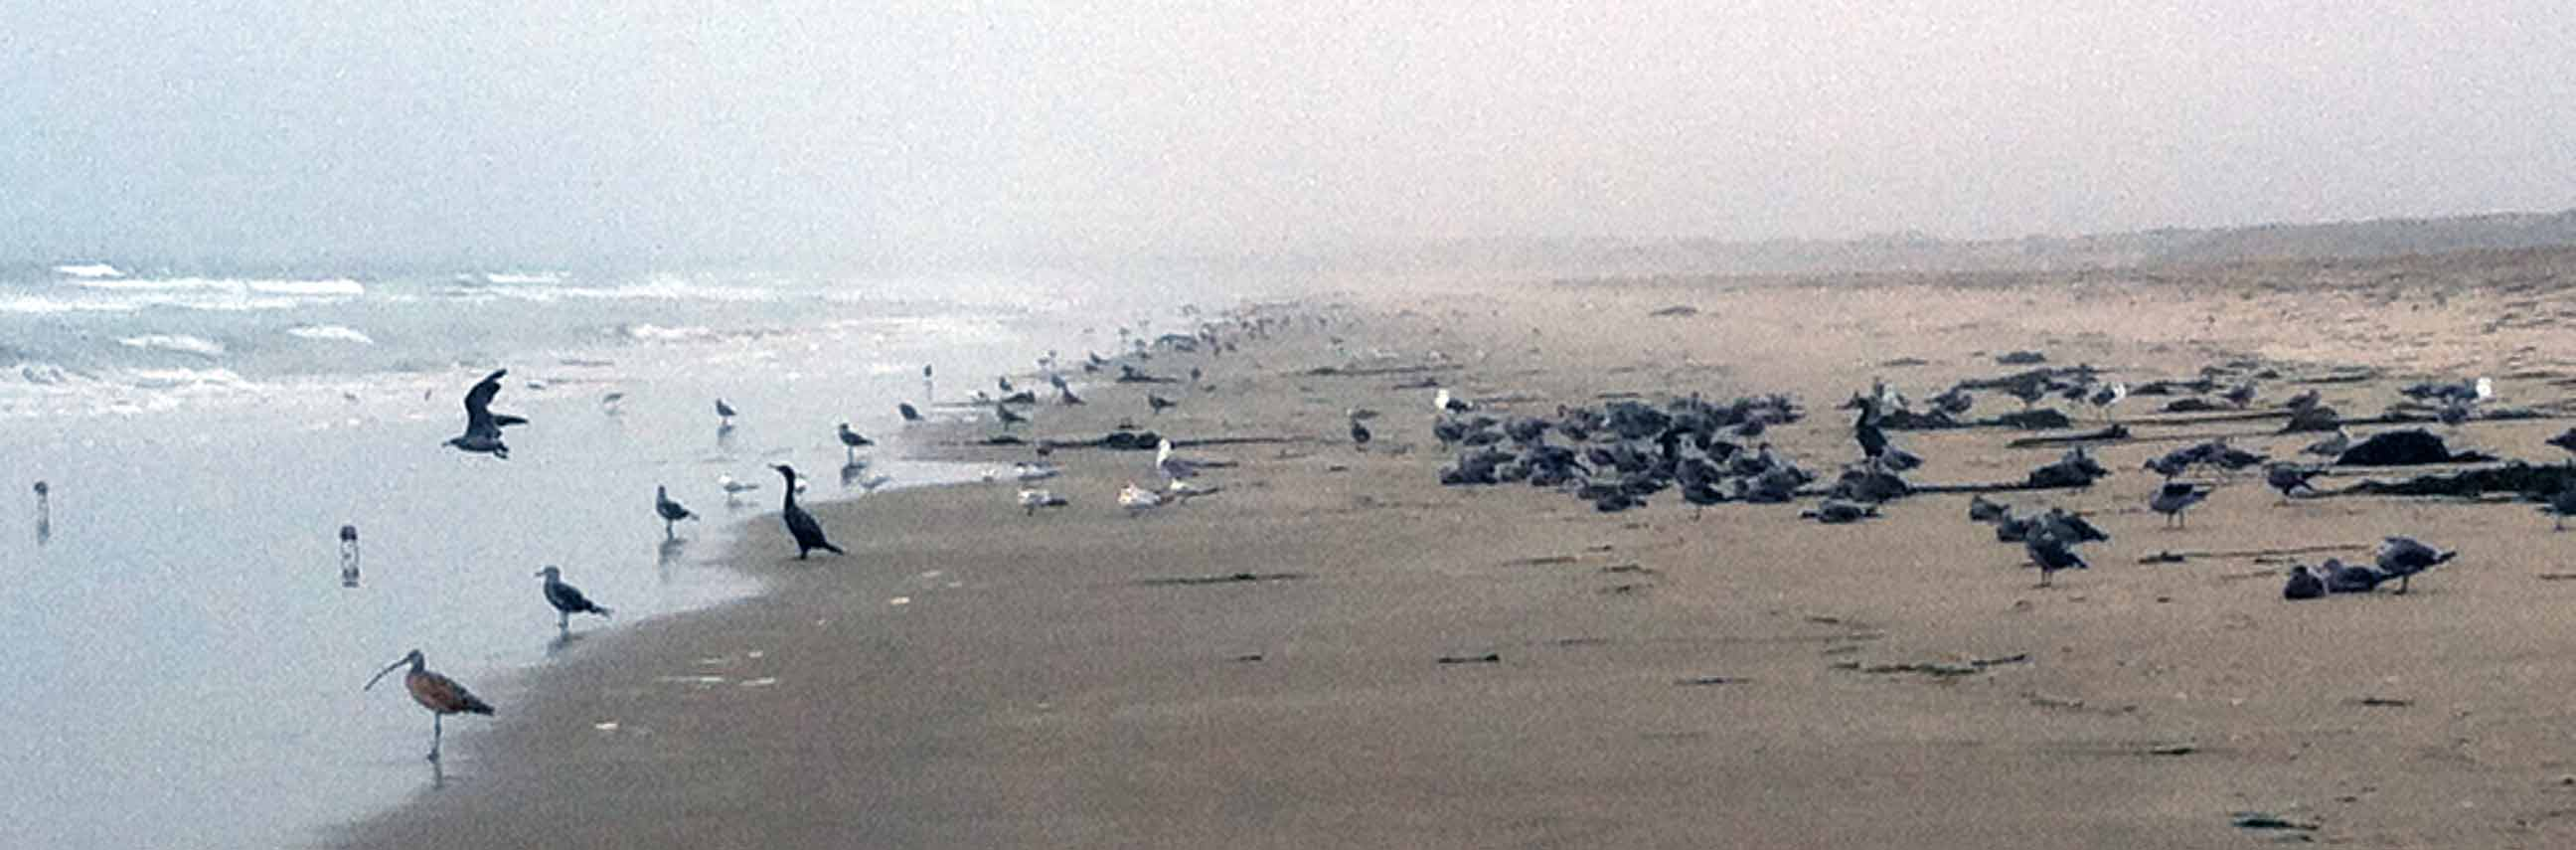 Many birds on the beach